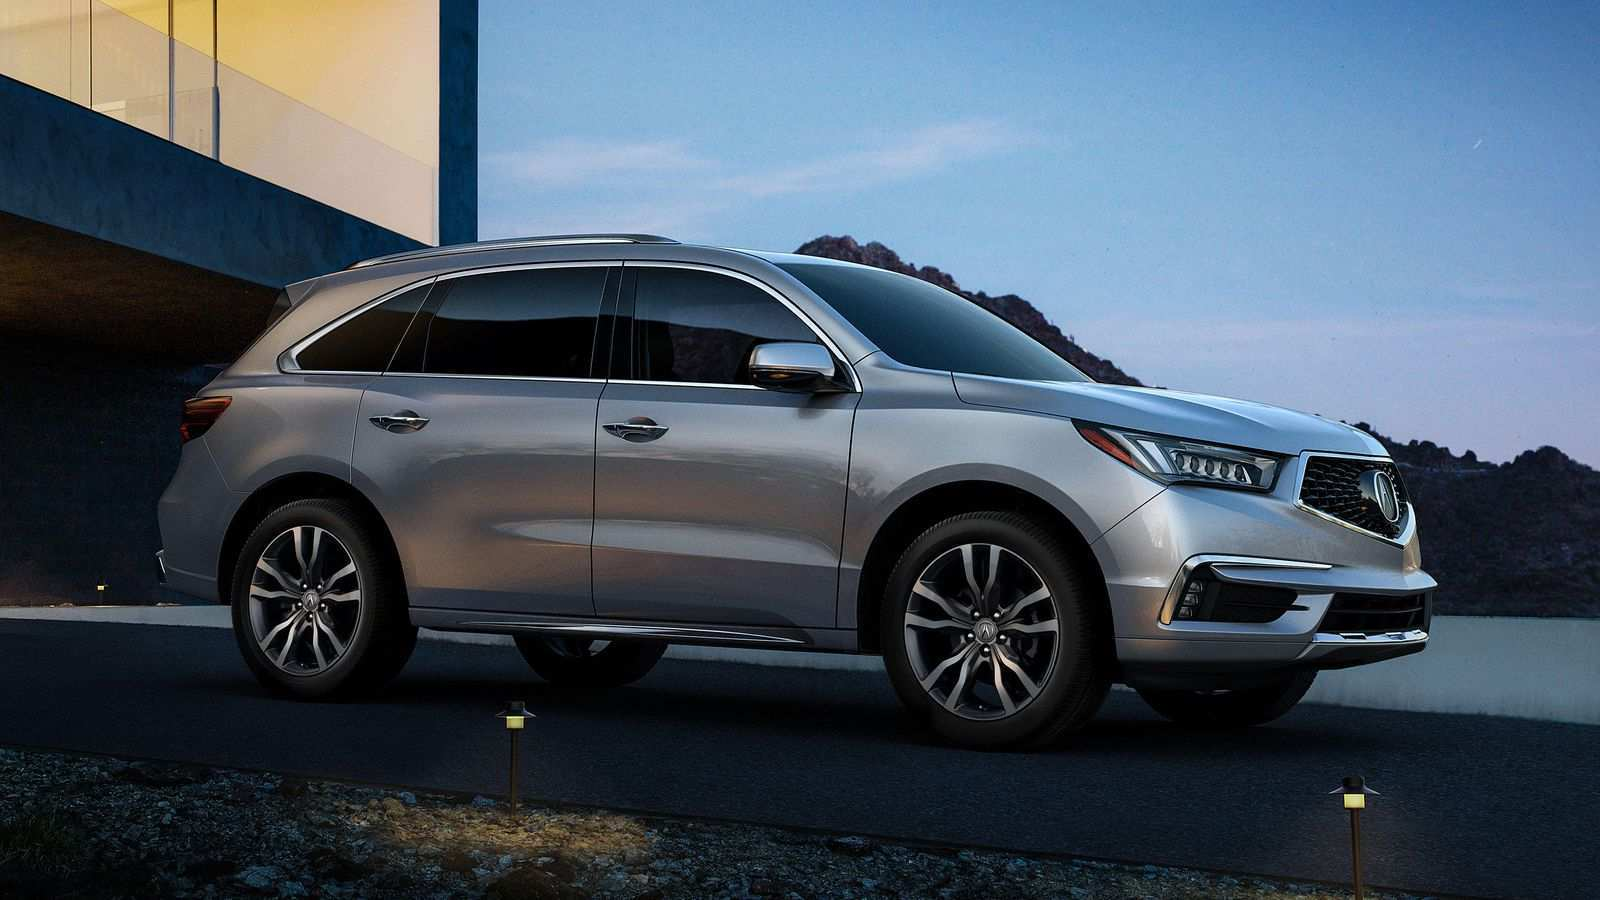 96 The Acura Mdx 2019 Vs 2020 Pricing